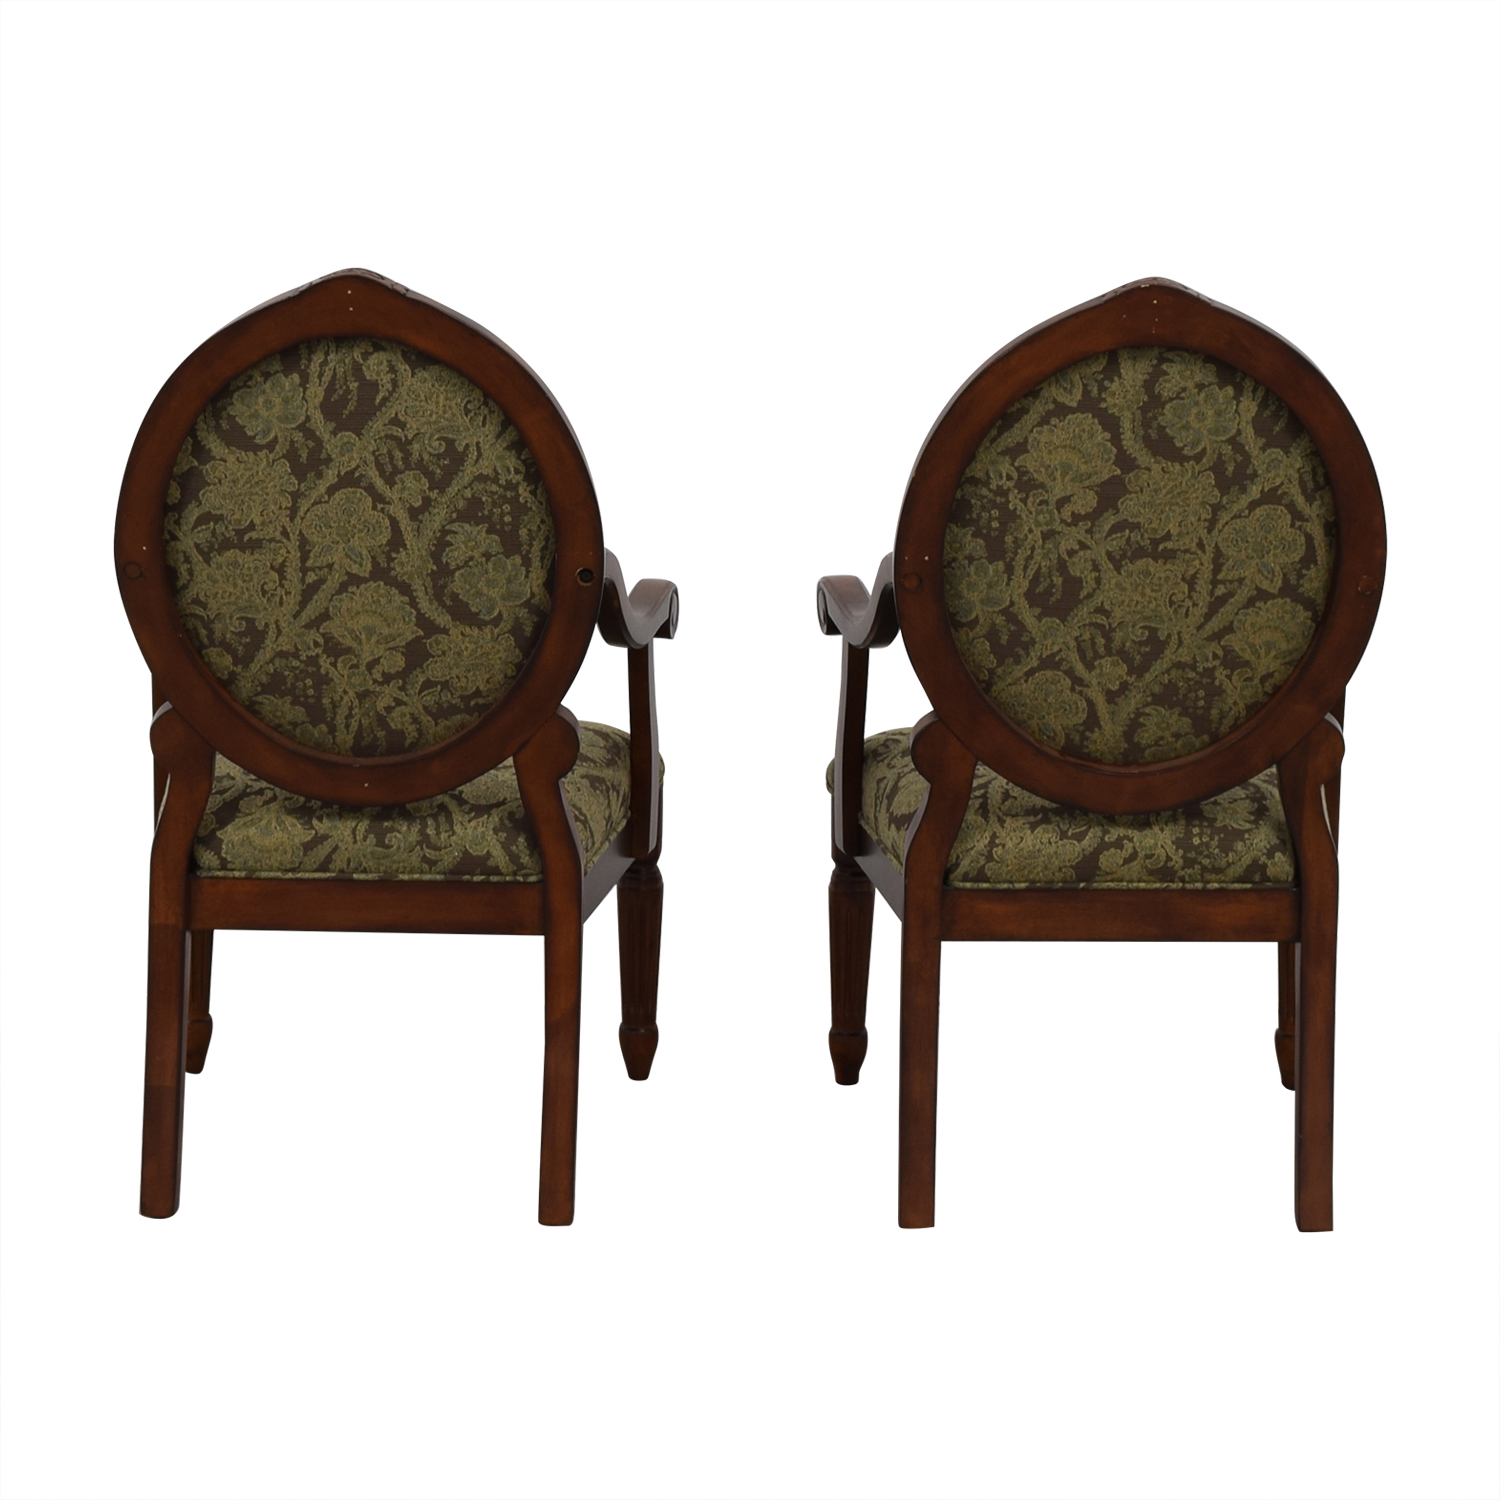 E & E Co E & E Co Floral Upholstered Wood Chairs second hand